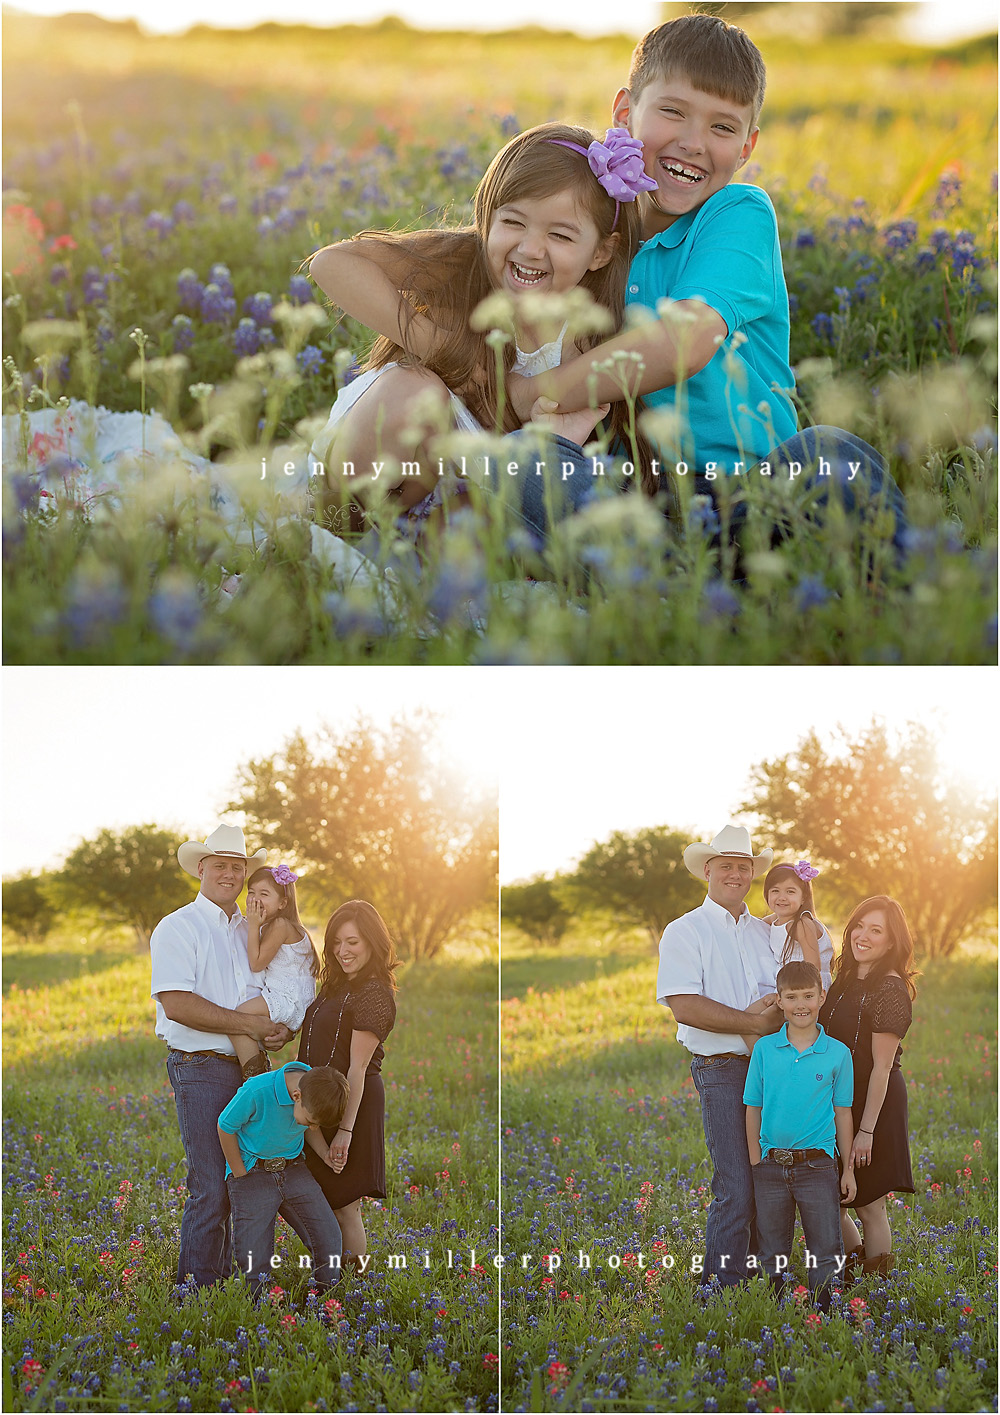 helotes single parents Helotes, texas our lady of guadalupe catholic church 13715 riggs road, po box 639, helotes, 'rx 78023 families, single parent.